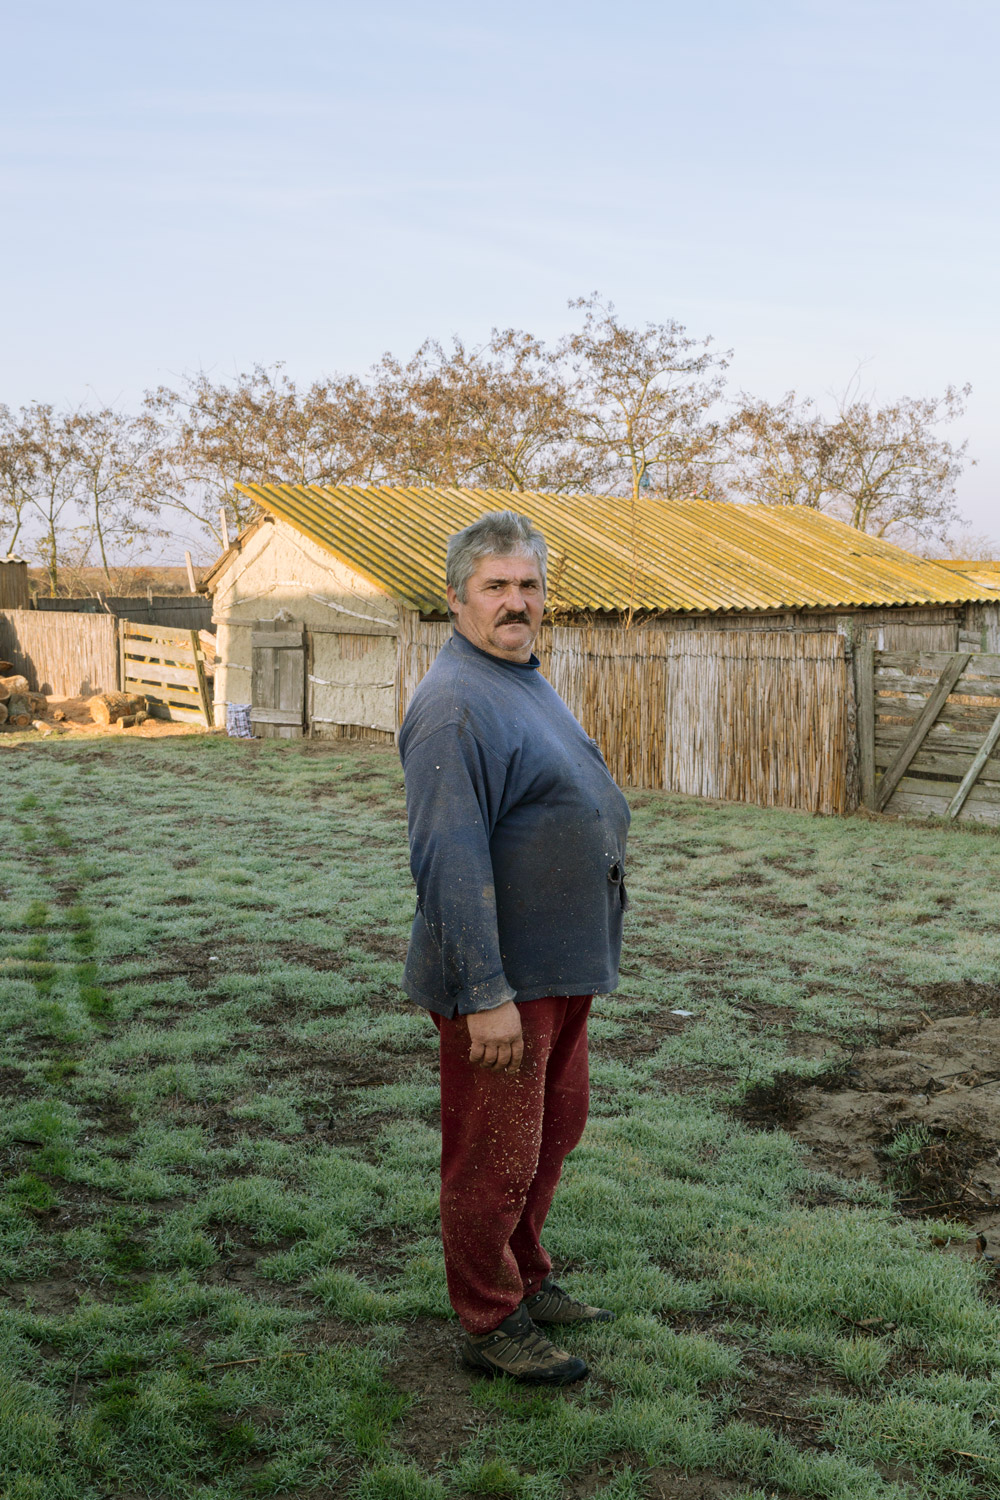 Sulina, Romania, November 2017. Outside of town, a farmer next to his house.